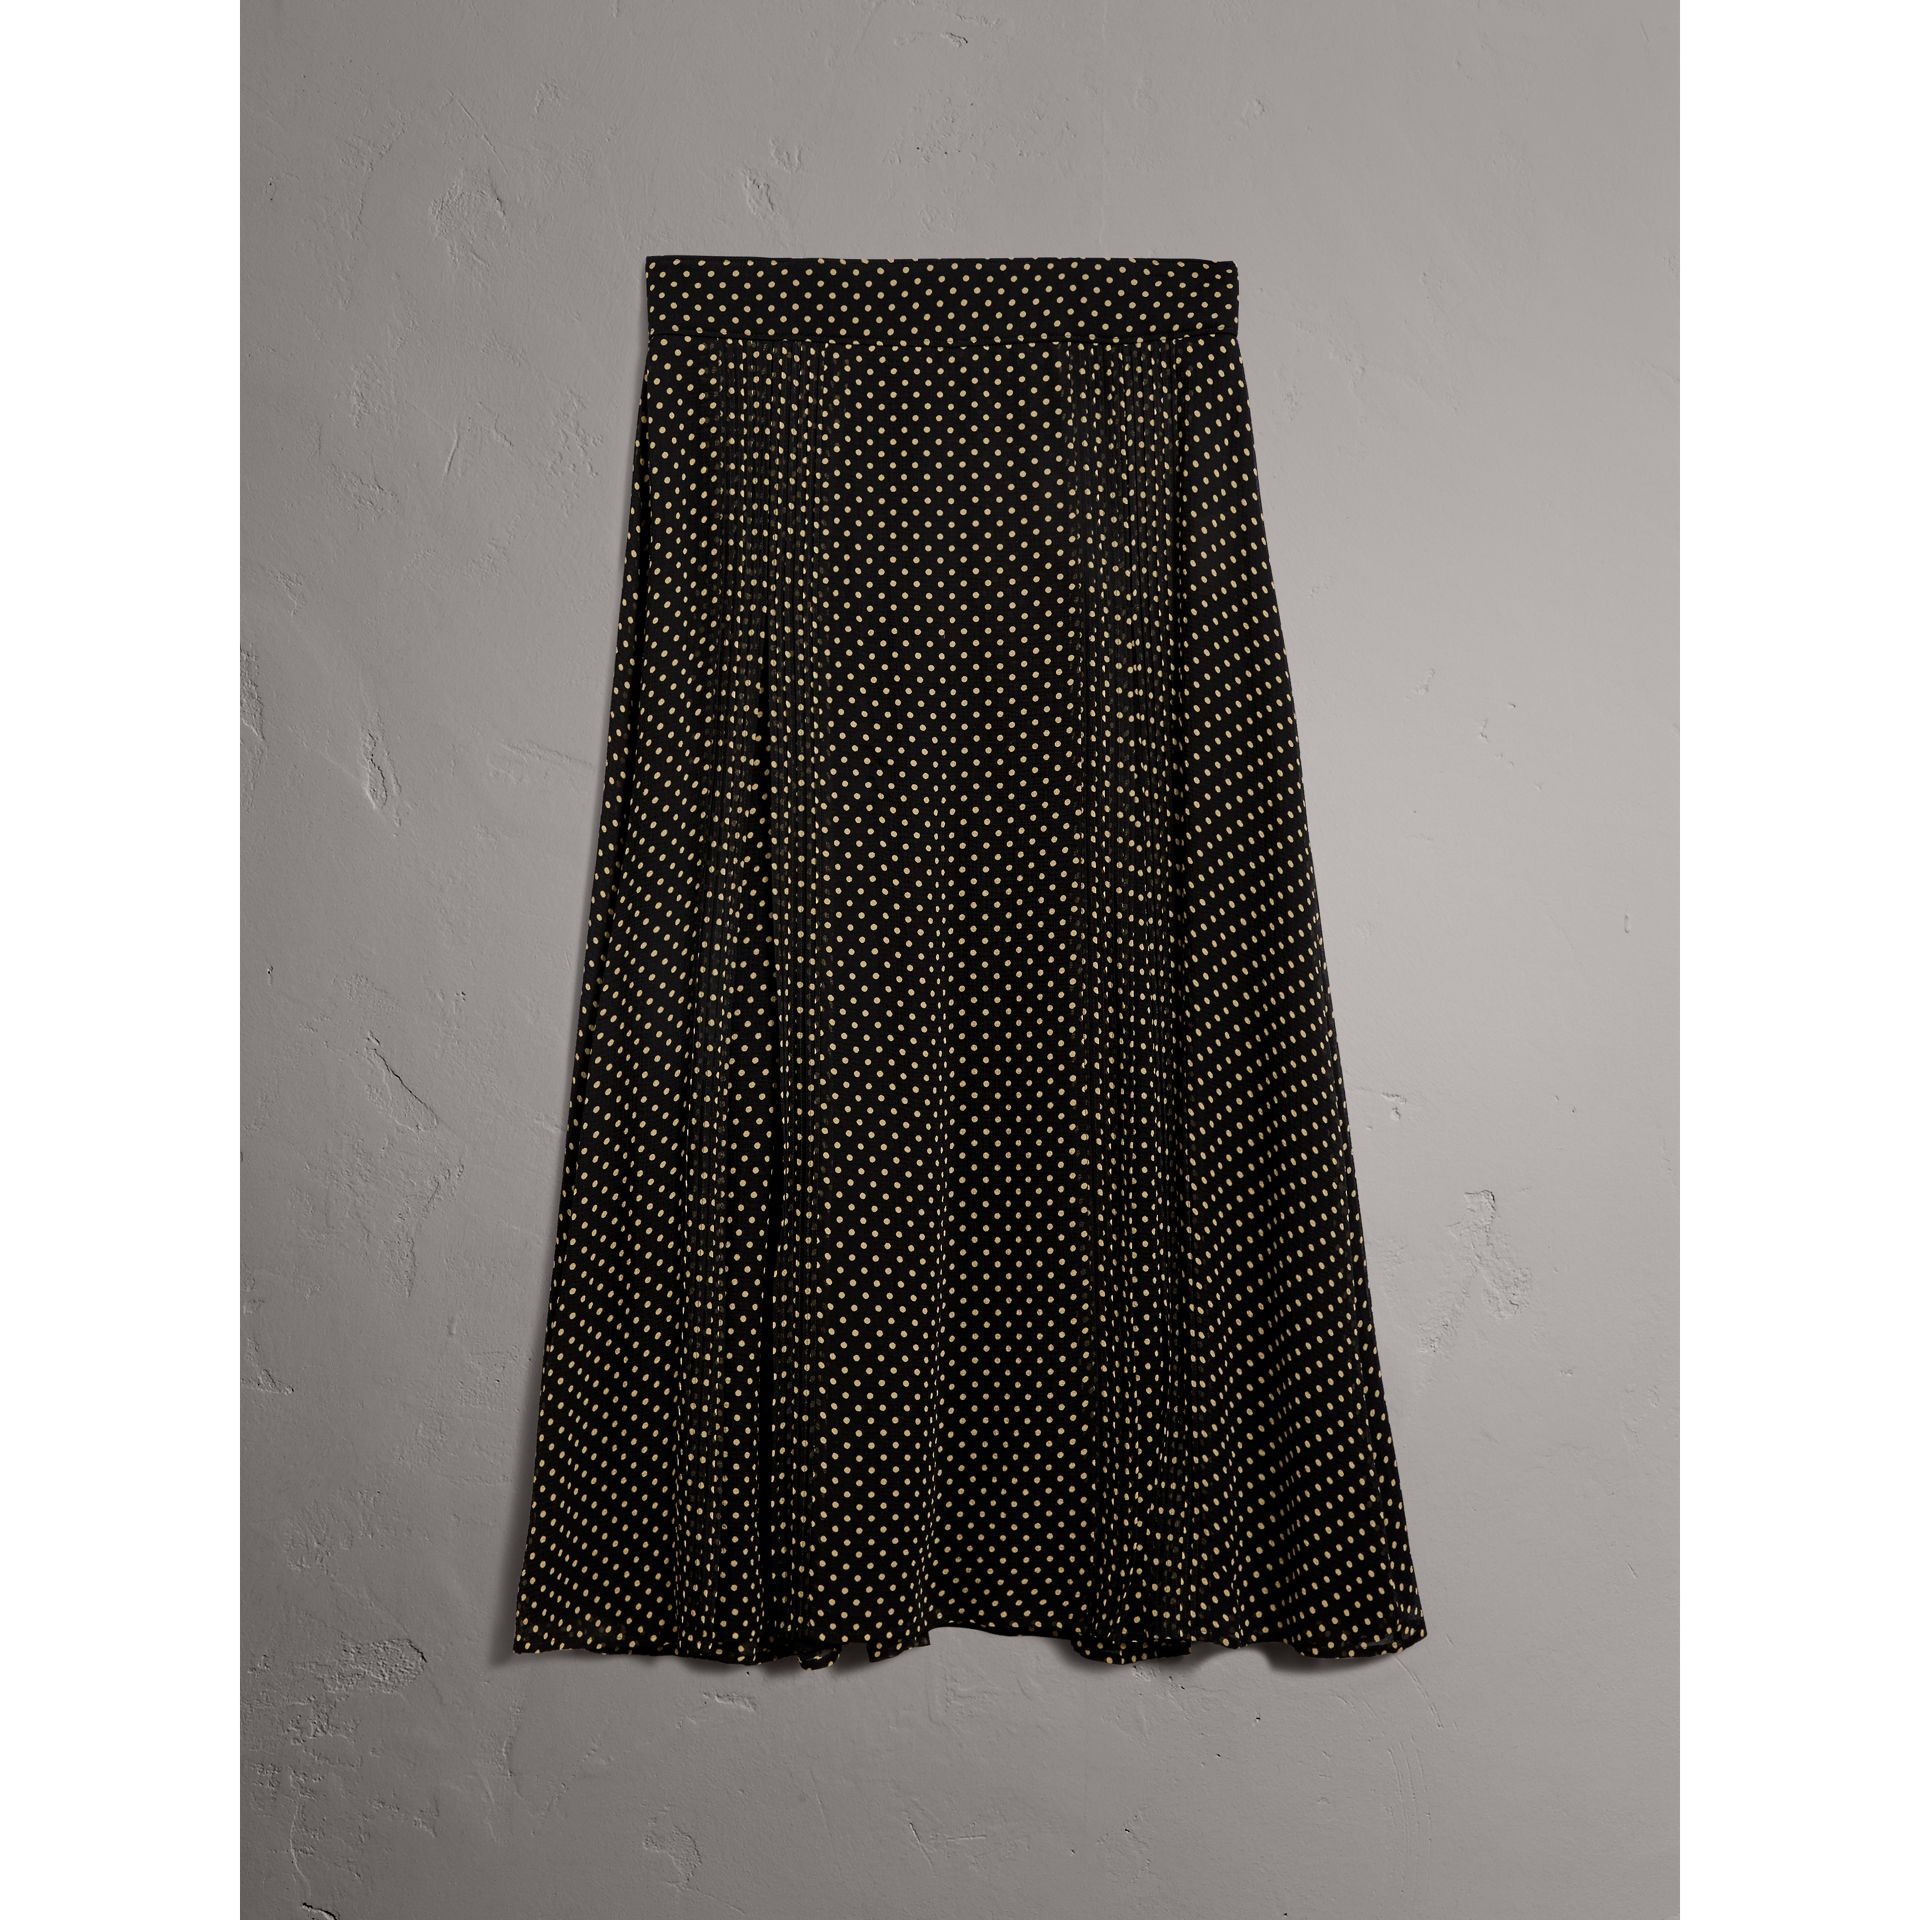 Pintuck Detail Dot Print Silk Skirt in Black - Women | Burberry Singapore - gallery image 3